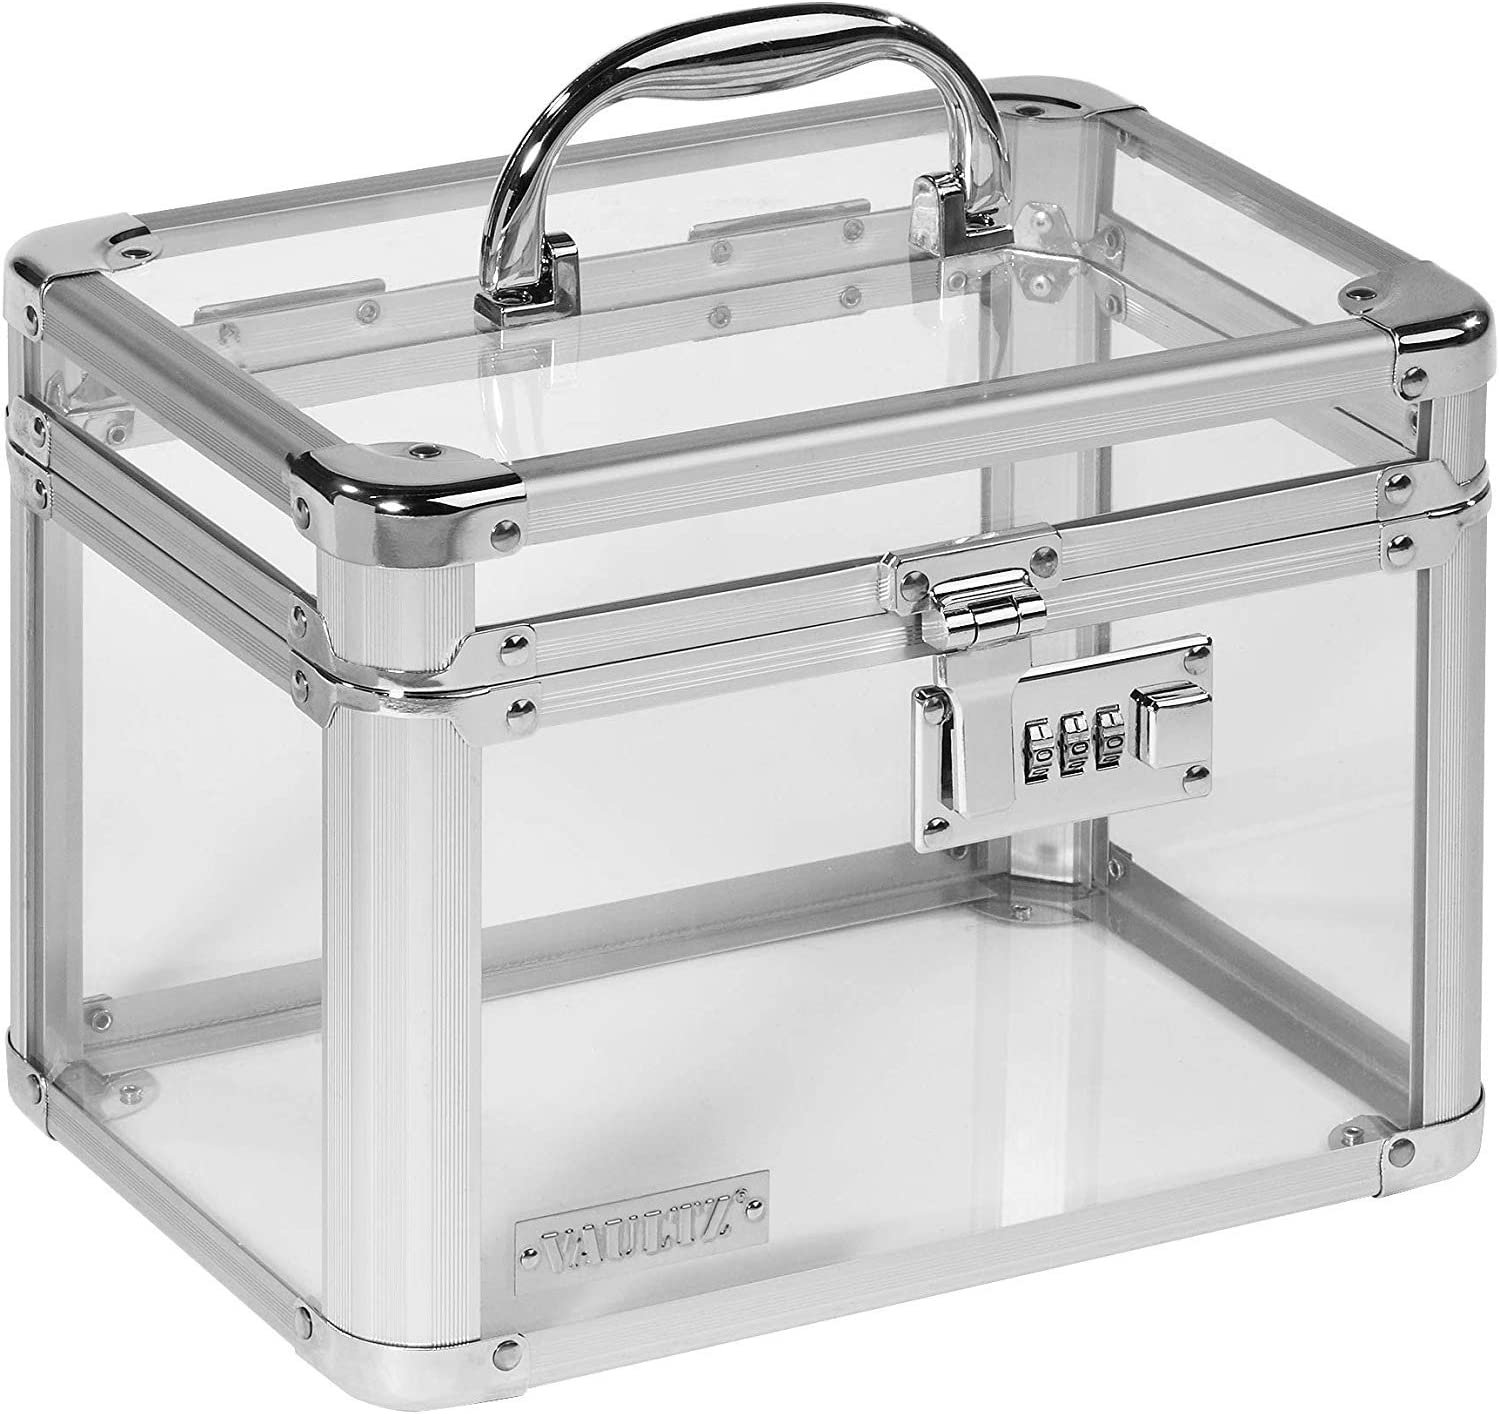 Vaultz Combination Lock Box, Clear Acrylic and Steel, 7.75 x 7.25 x 10 Inches, Clear (VZ00155)